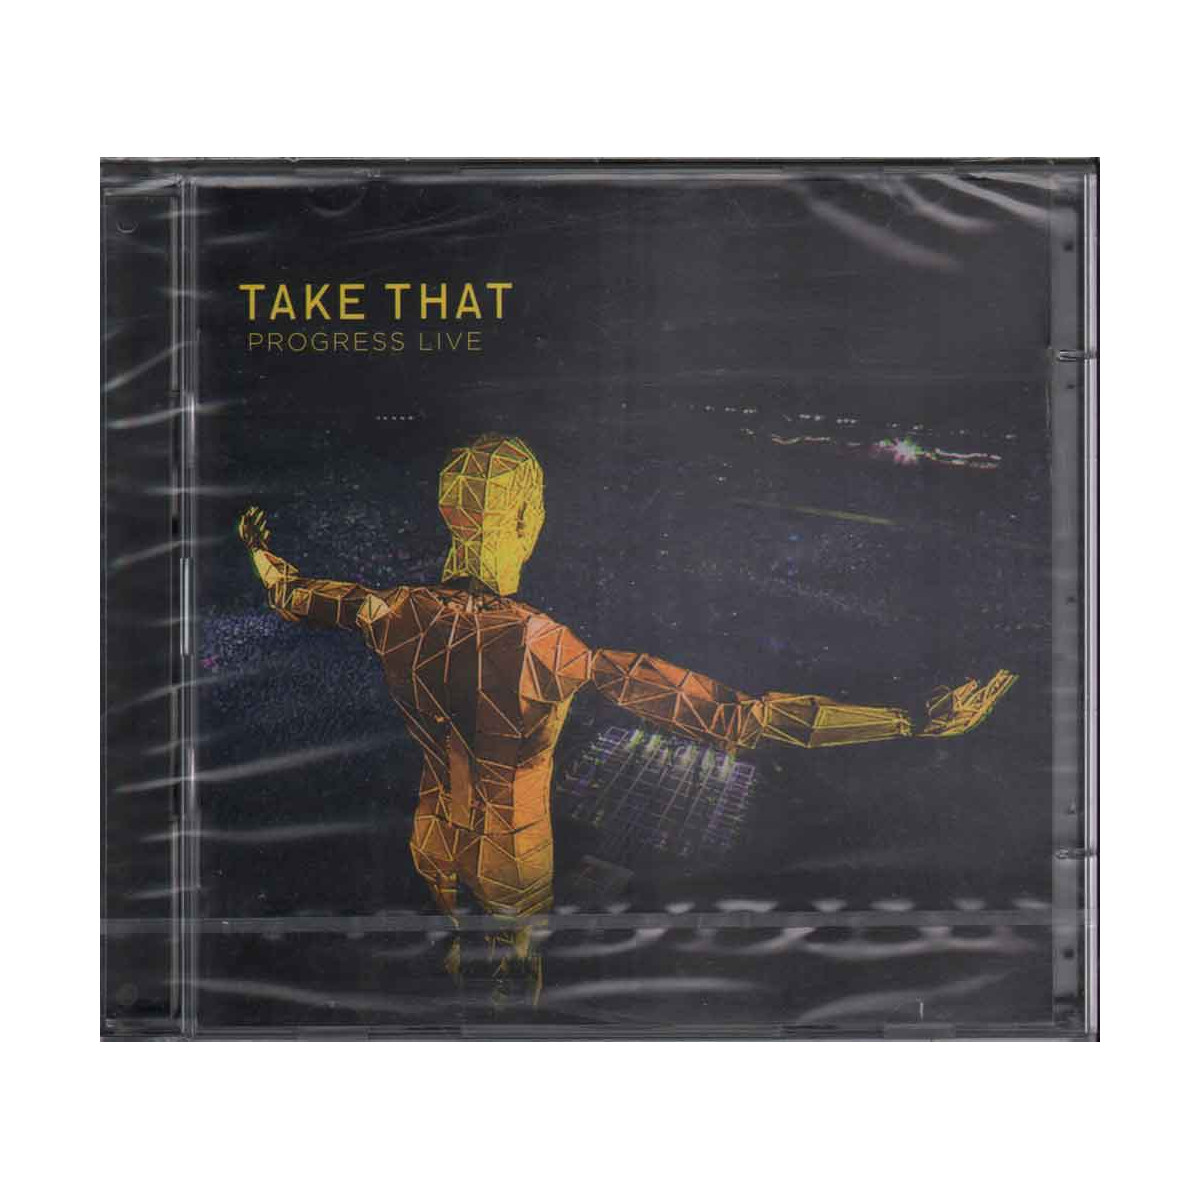 Take That 2 CD Progress Live Nuovo Sigillato 0602527900131